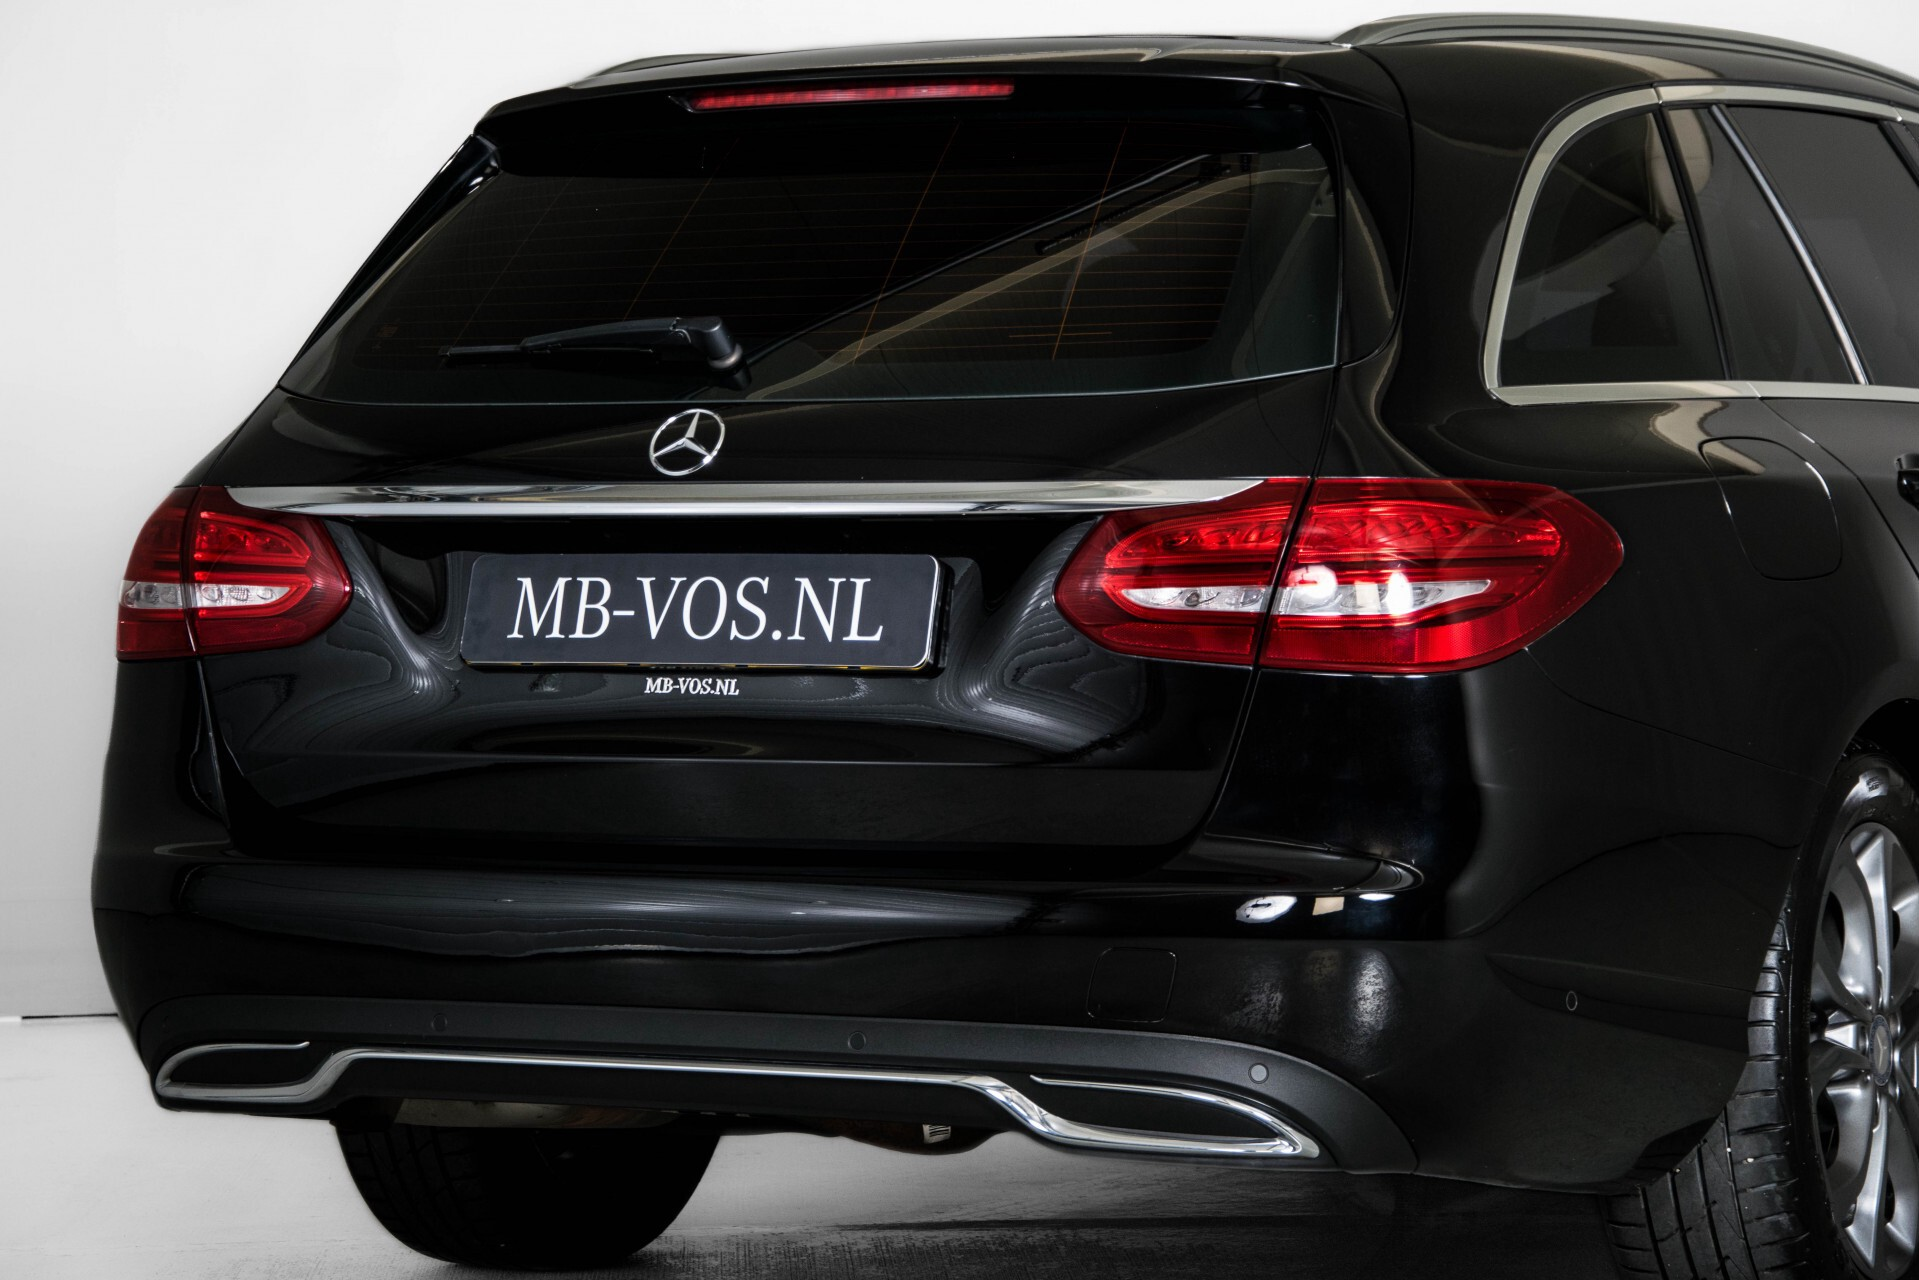 Mercedes-Benz C-Klasse Estate 180 Avantgarde LED/Navi/Privacyglas/Pts/Aut-koffer Aut7 Foto 50